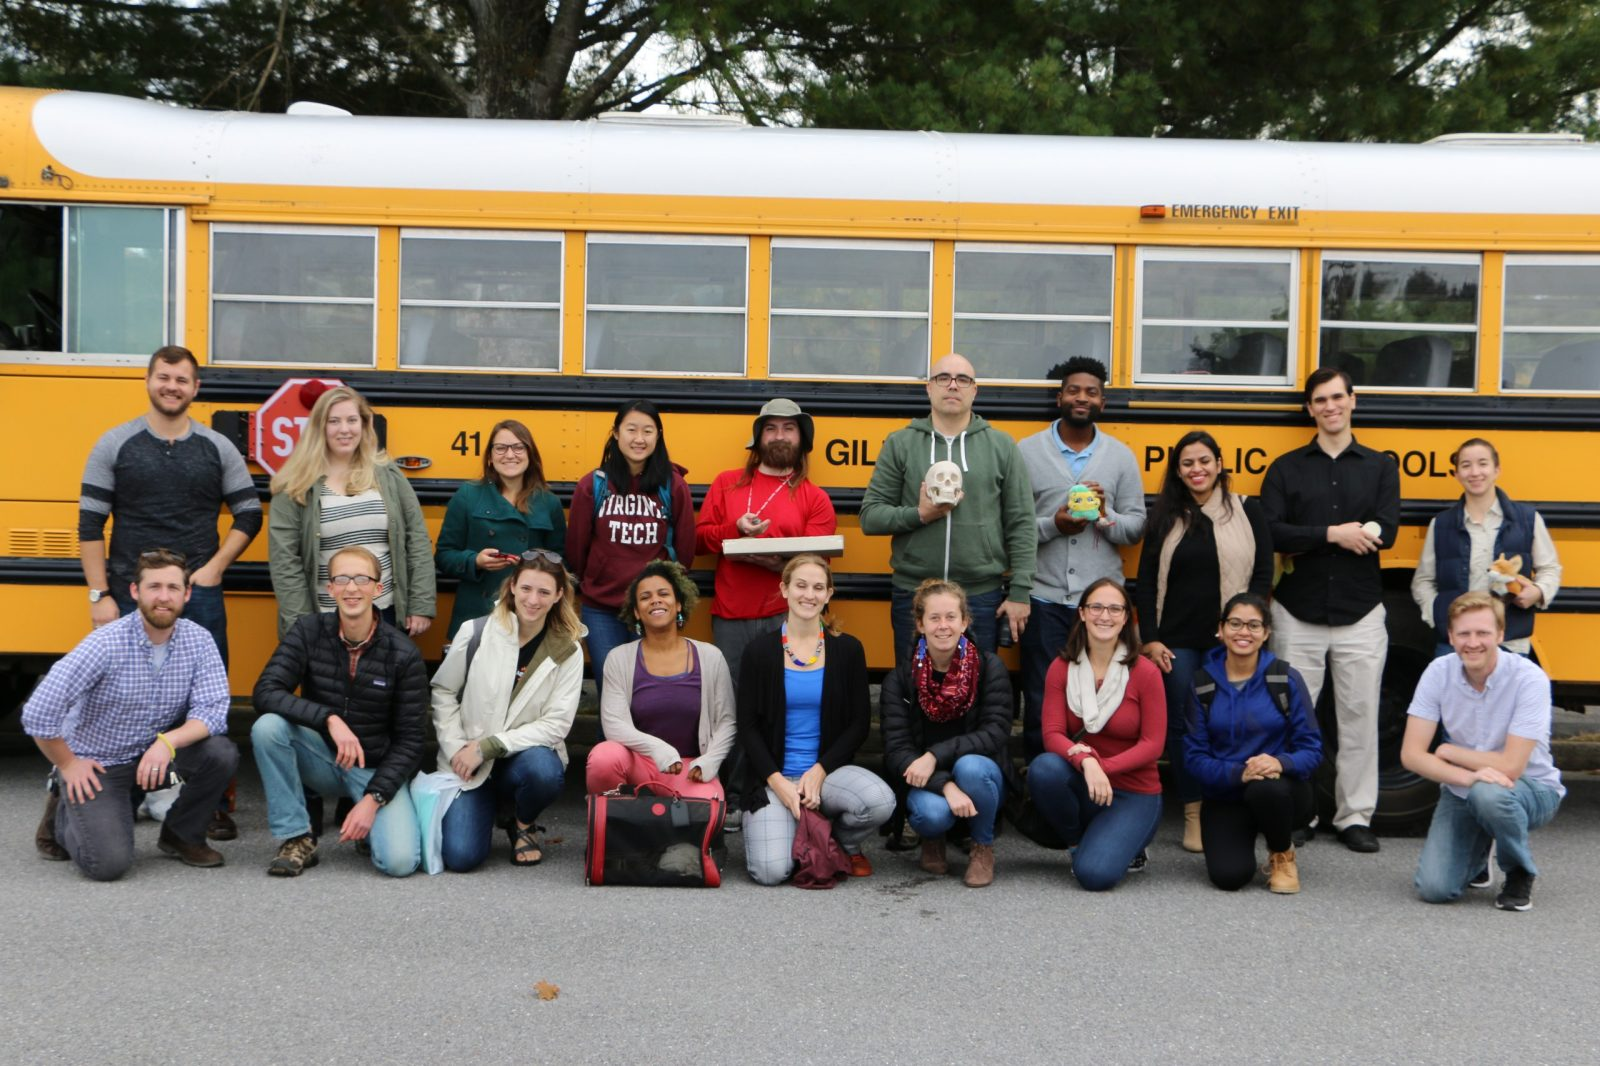 This photo shows 9 young adults squatting or crouching and another 10 people standing behind them. Behind the entire group in the long side of a yellow school bus. The group is racially and ethnically diverse and made up of both males and females.